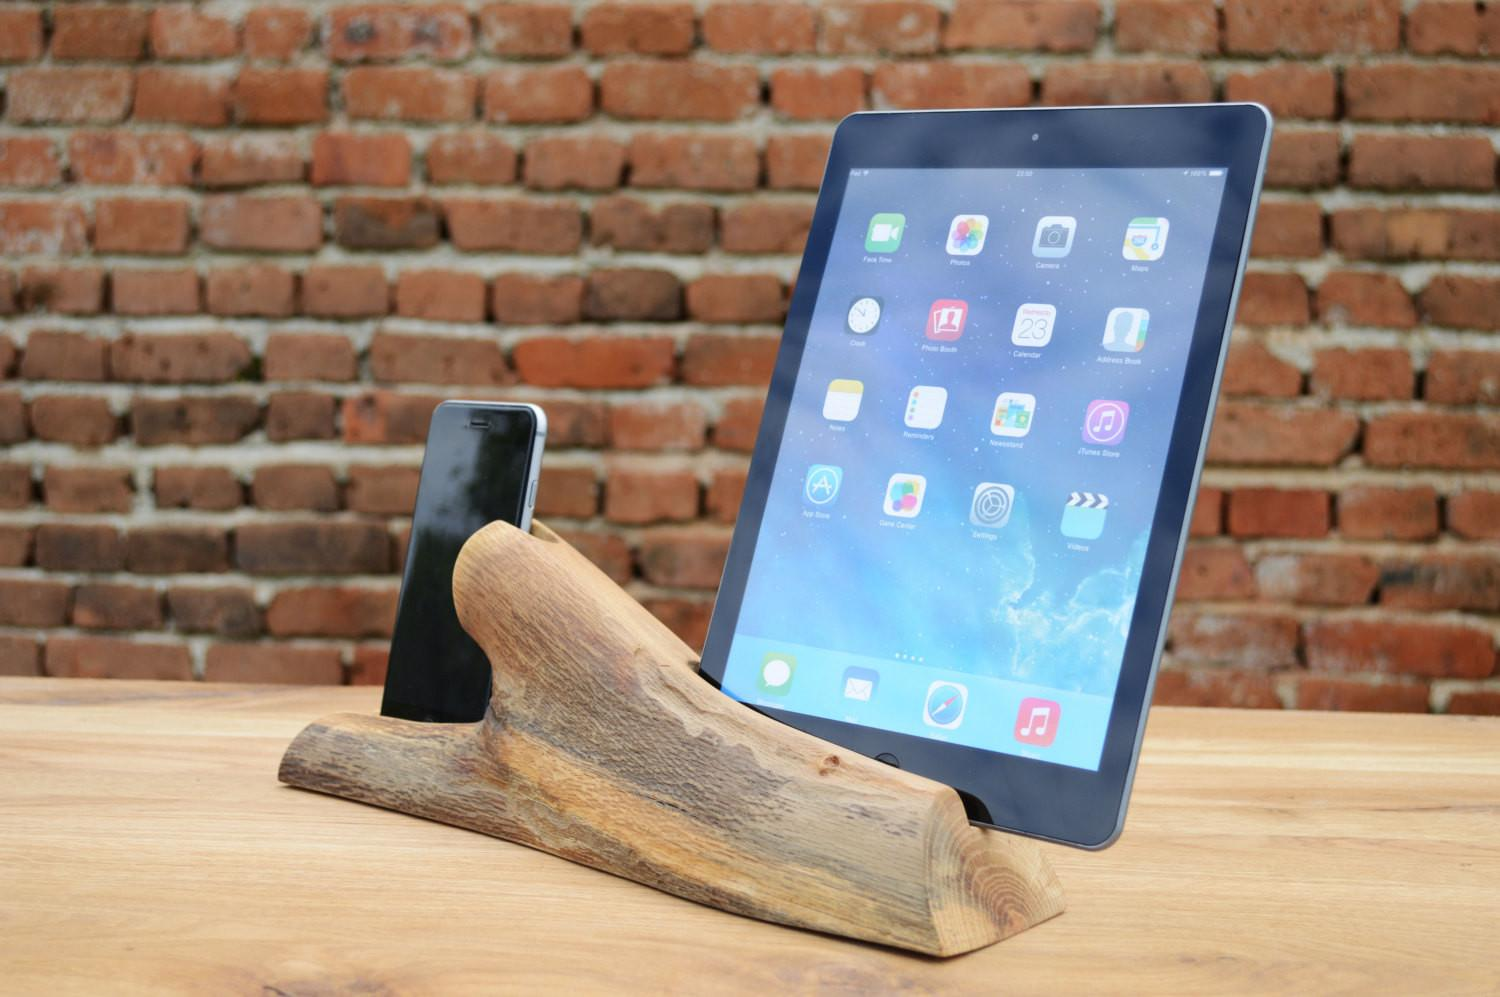 Tree Branch Ipad Iphone Docking Station Wooden